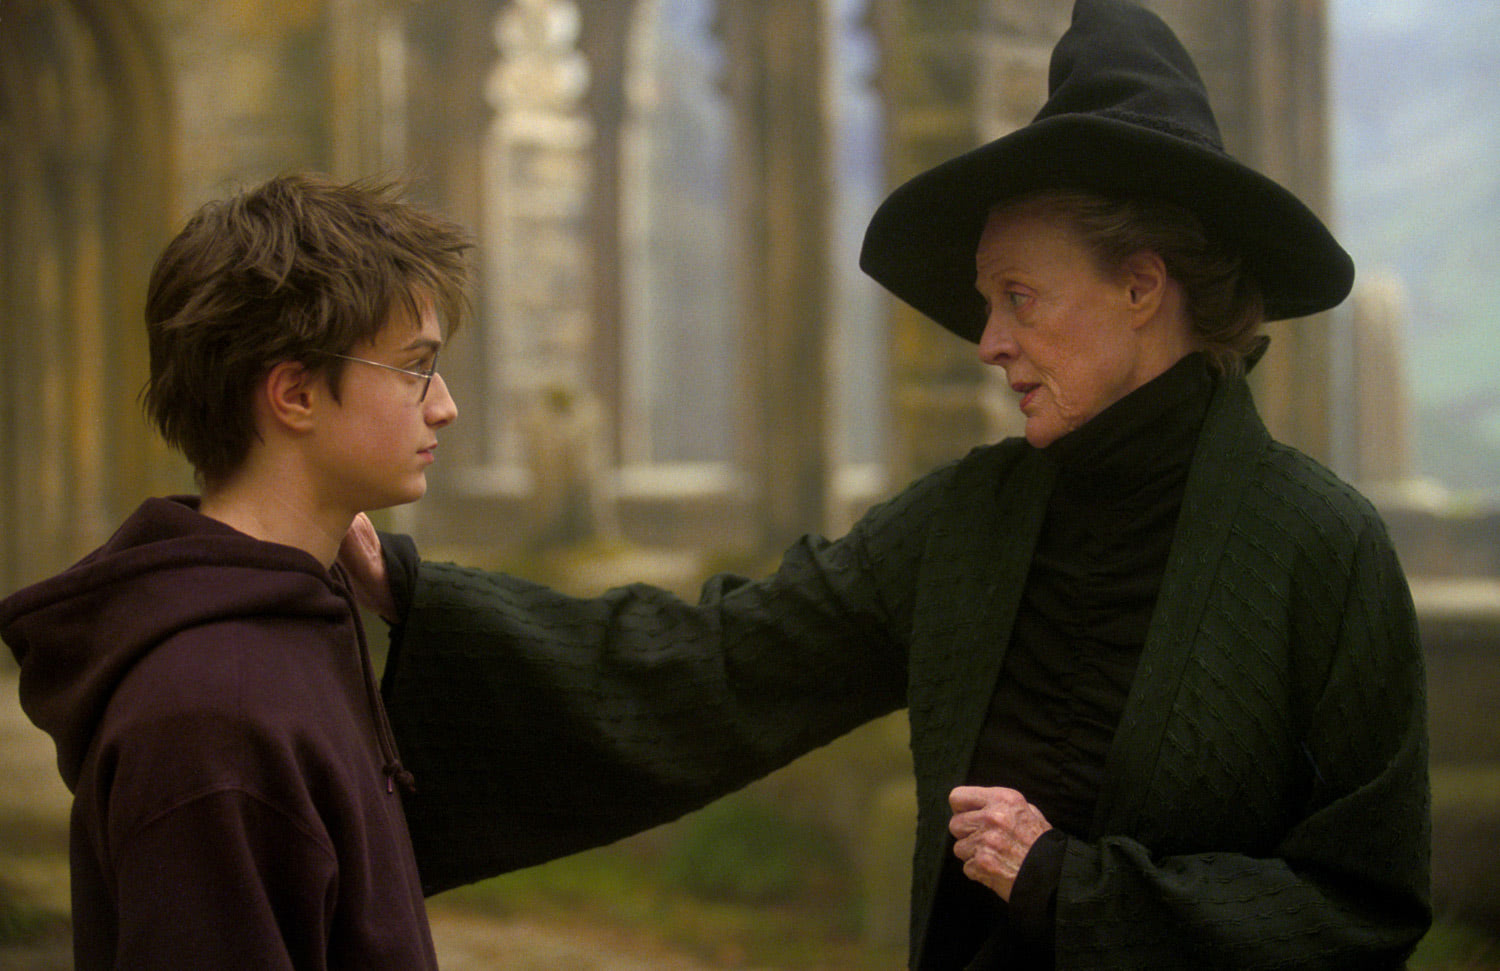 Harry and Professor McGonagall